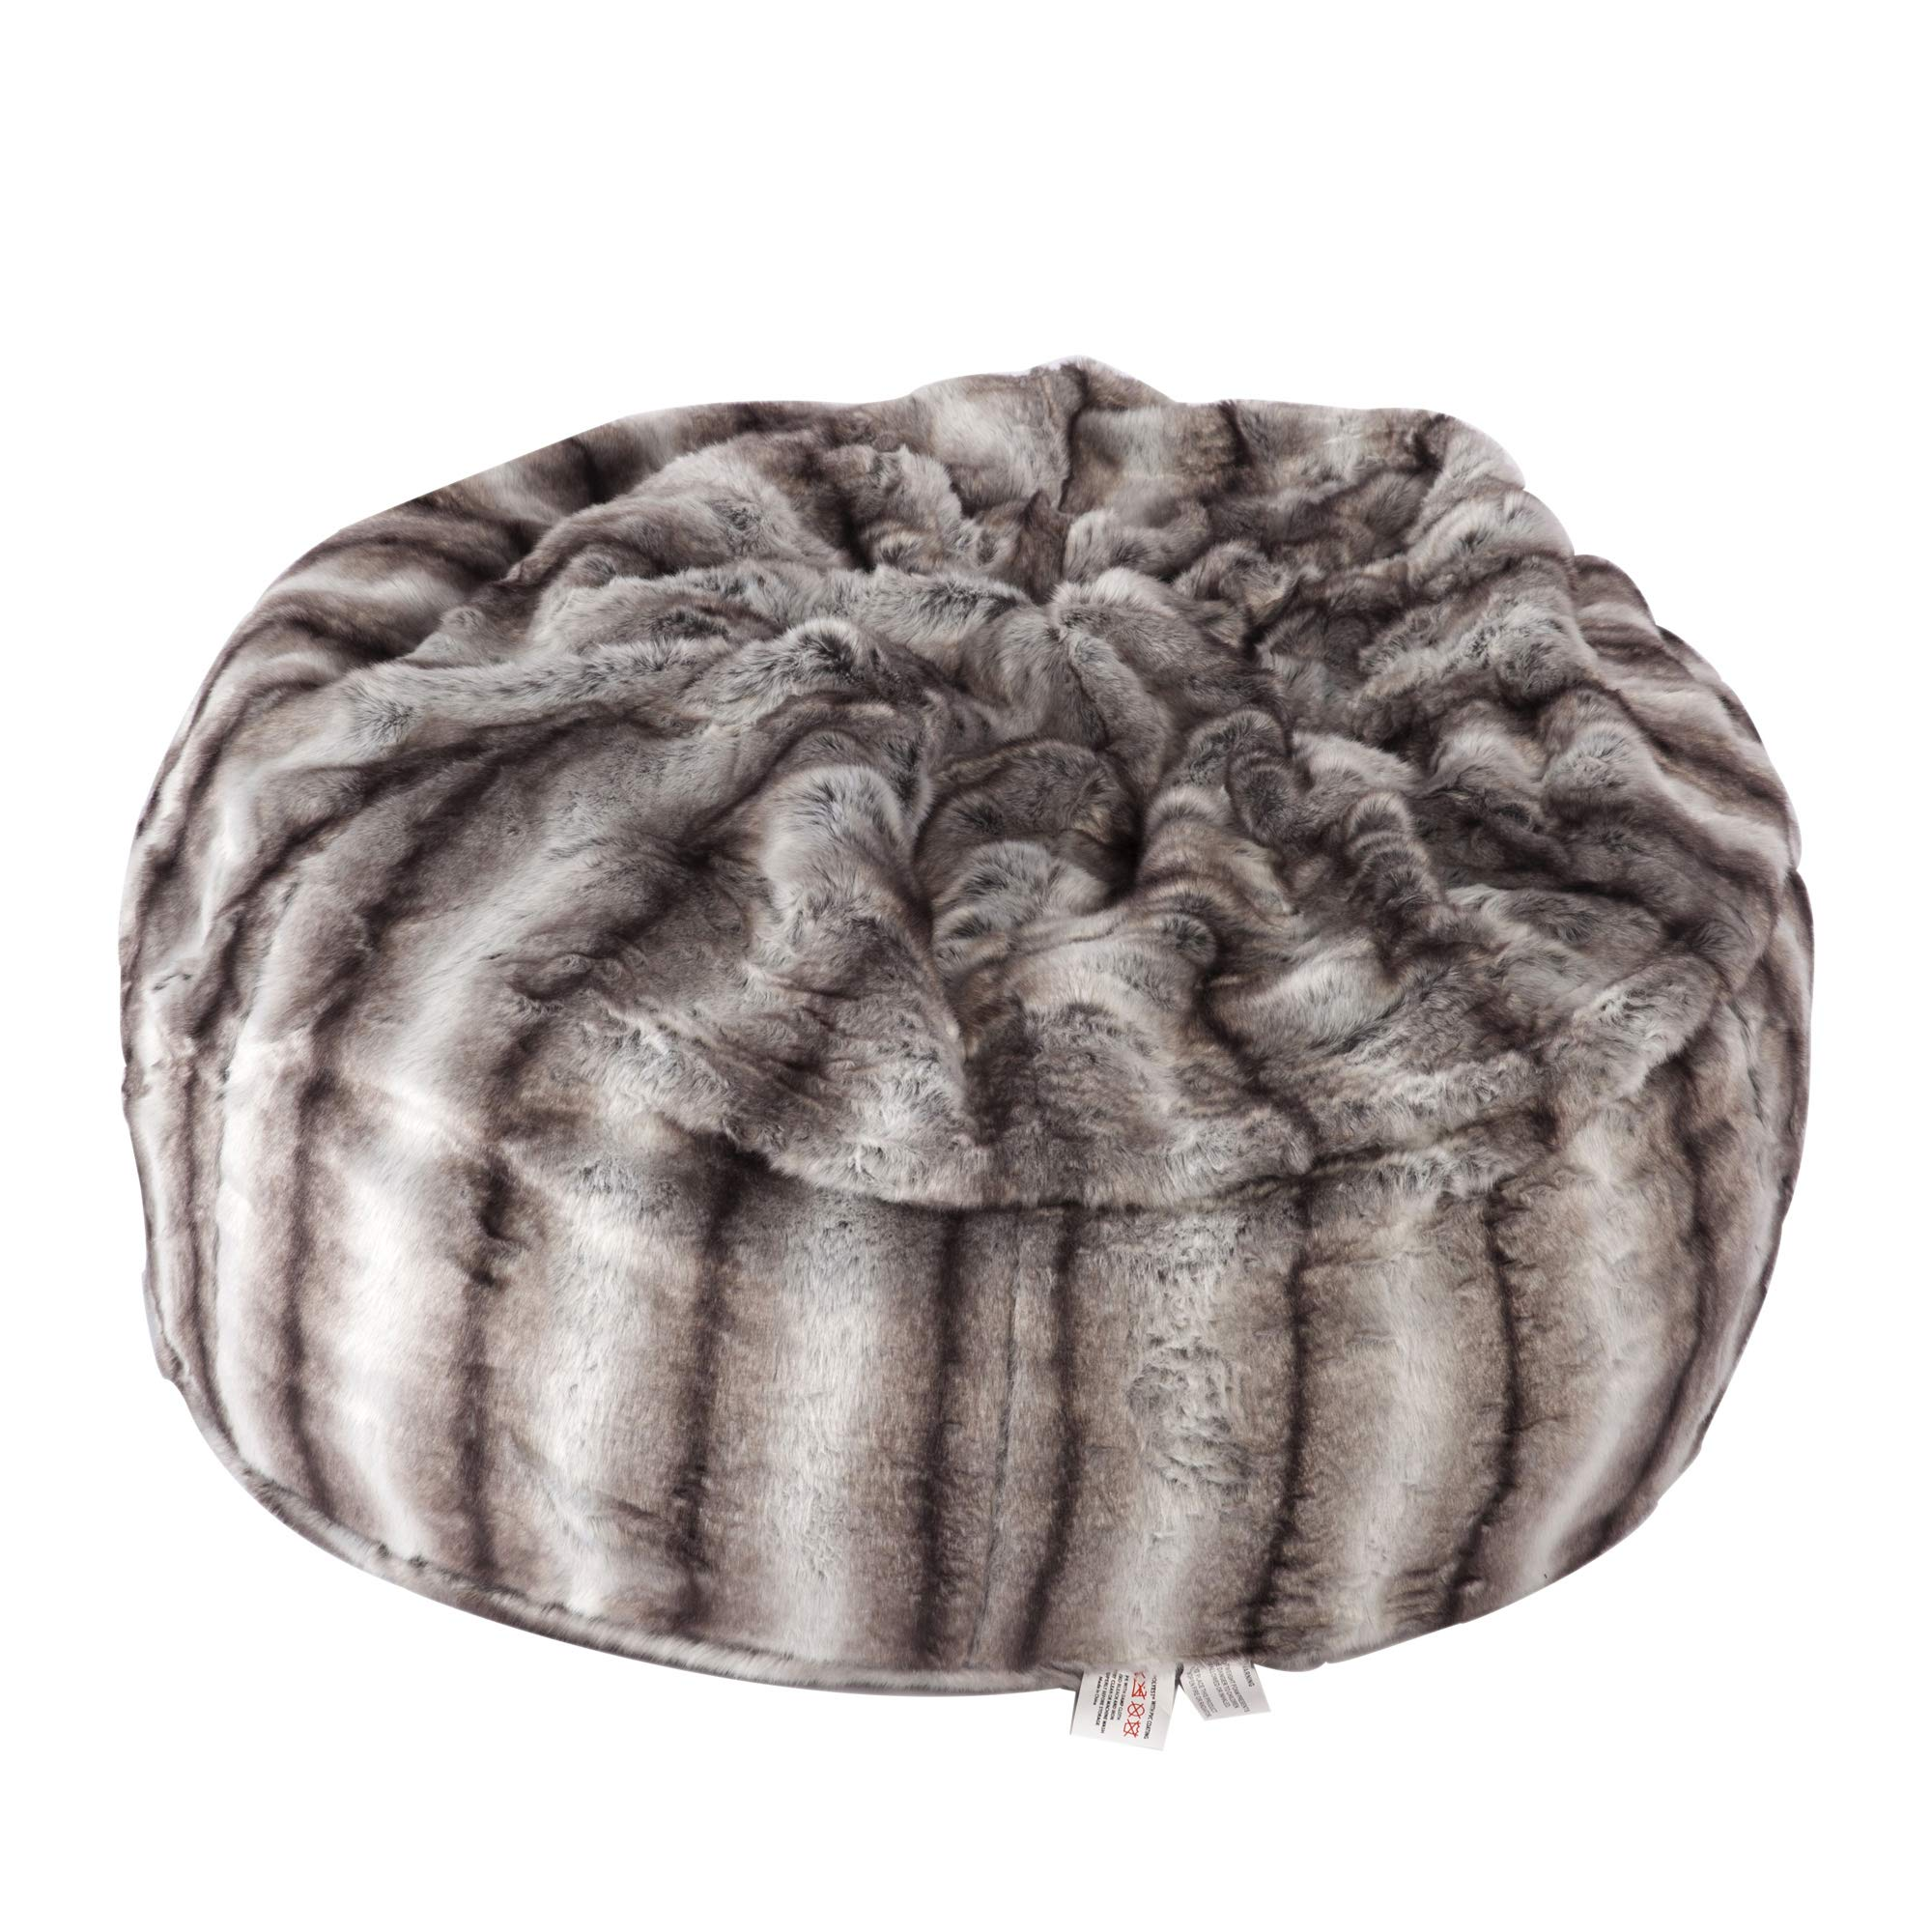 LUCKYERMORE Faux Fur Bean Bag Chair Luxury and Comfy Big Beanless Bag Chairs Plush Furry Chair Soft Sofa Lounger for Adults and Kids,Sponge Filling, 3 ft, Grey Streak Print by LUCKYERMORE